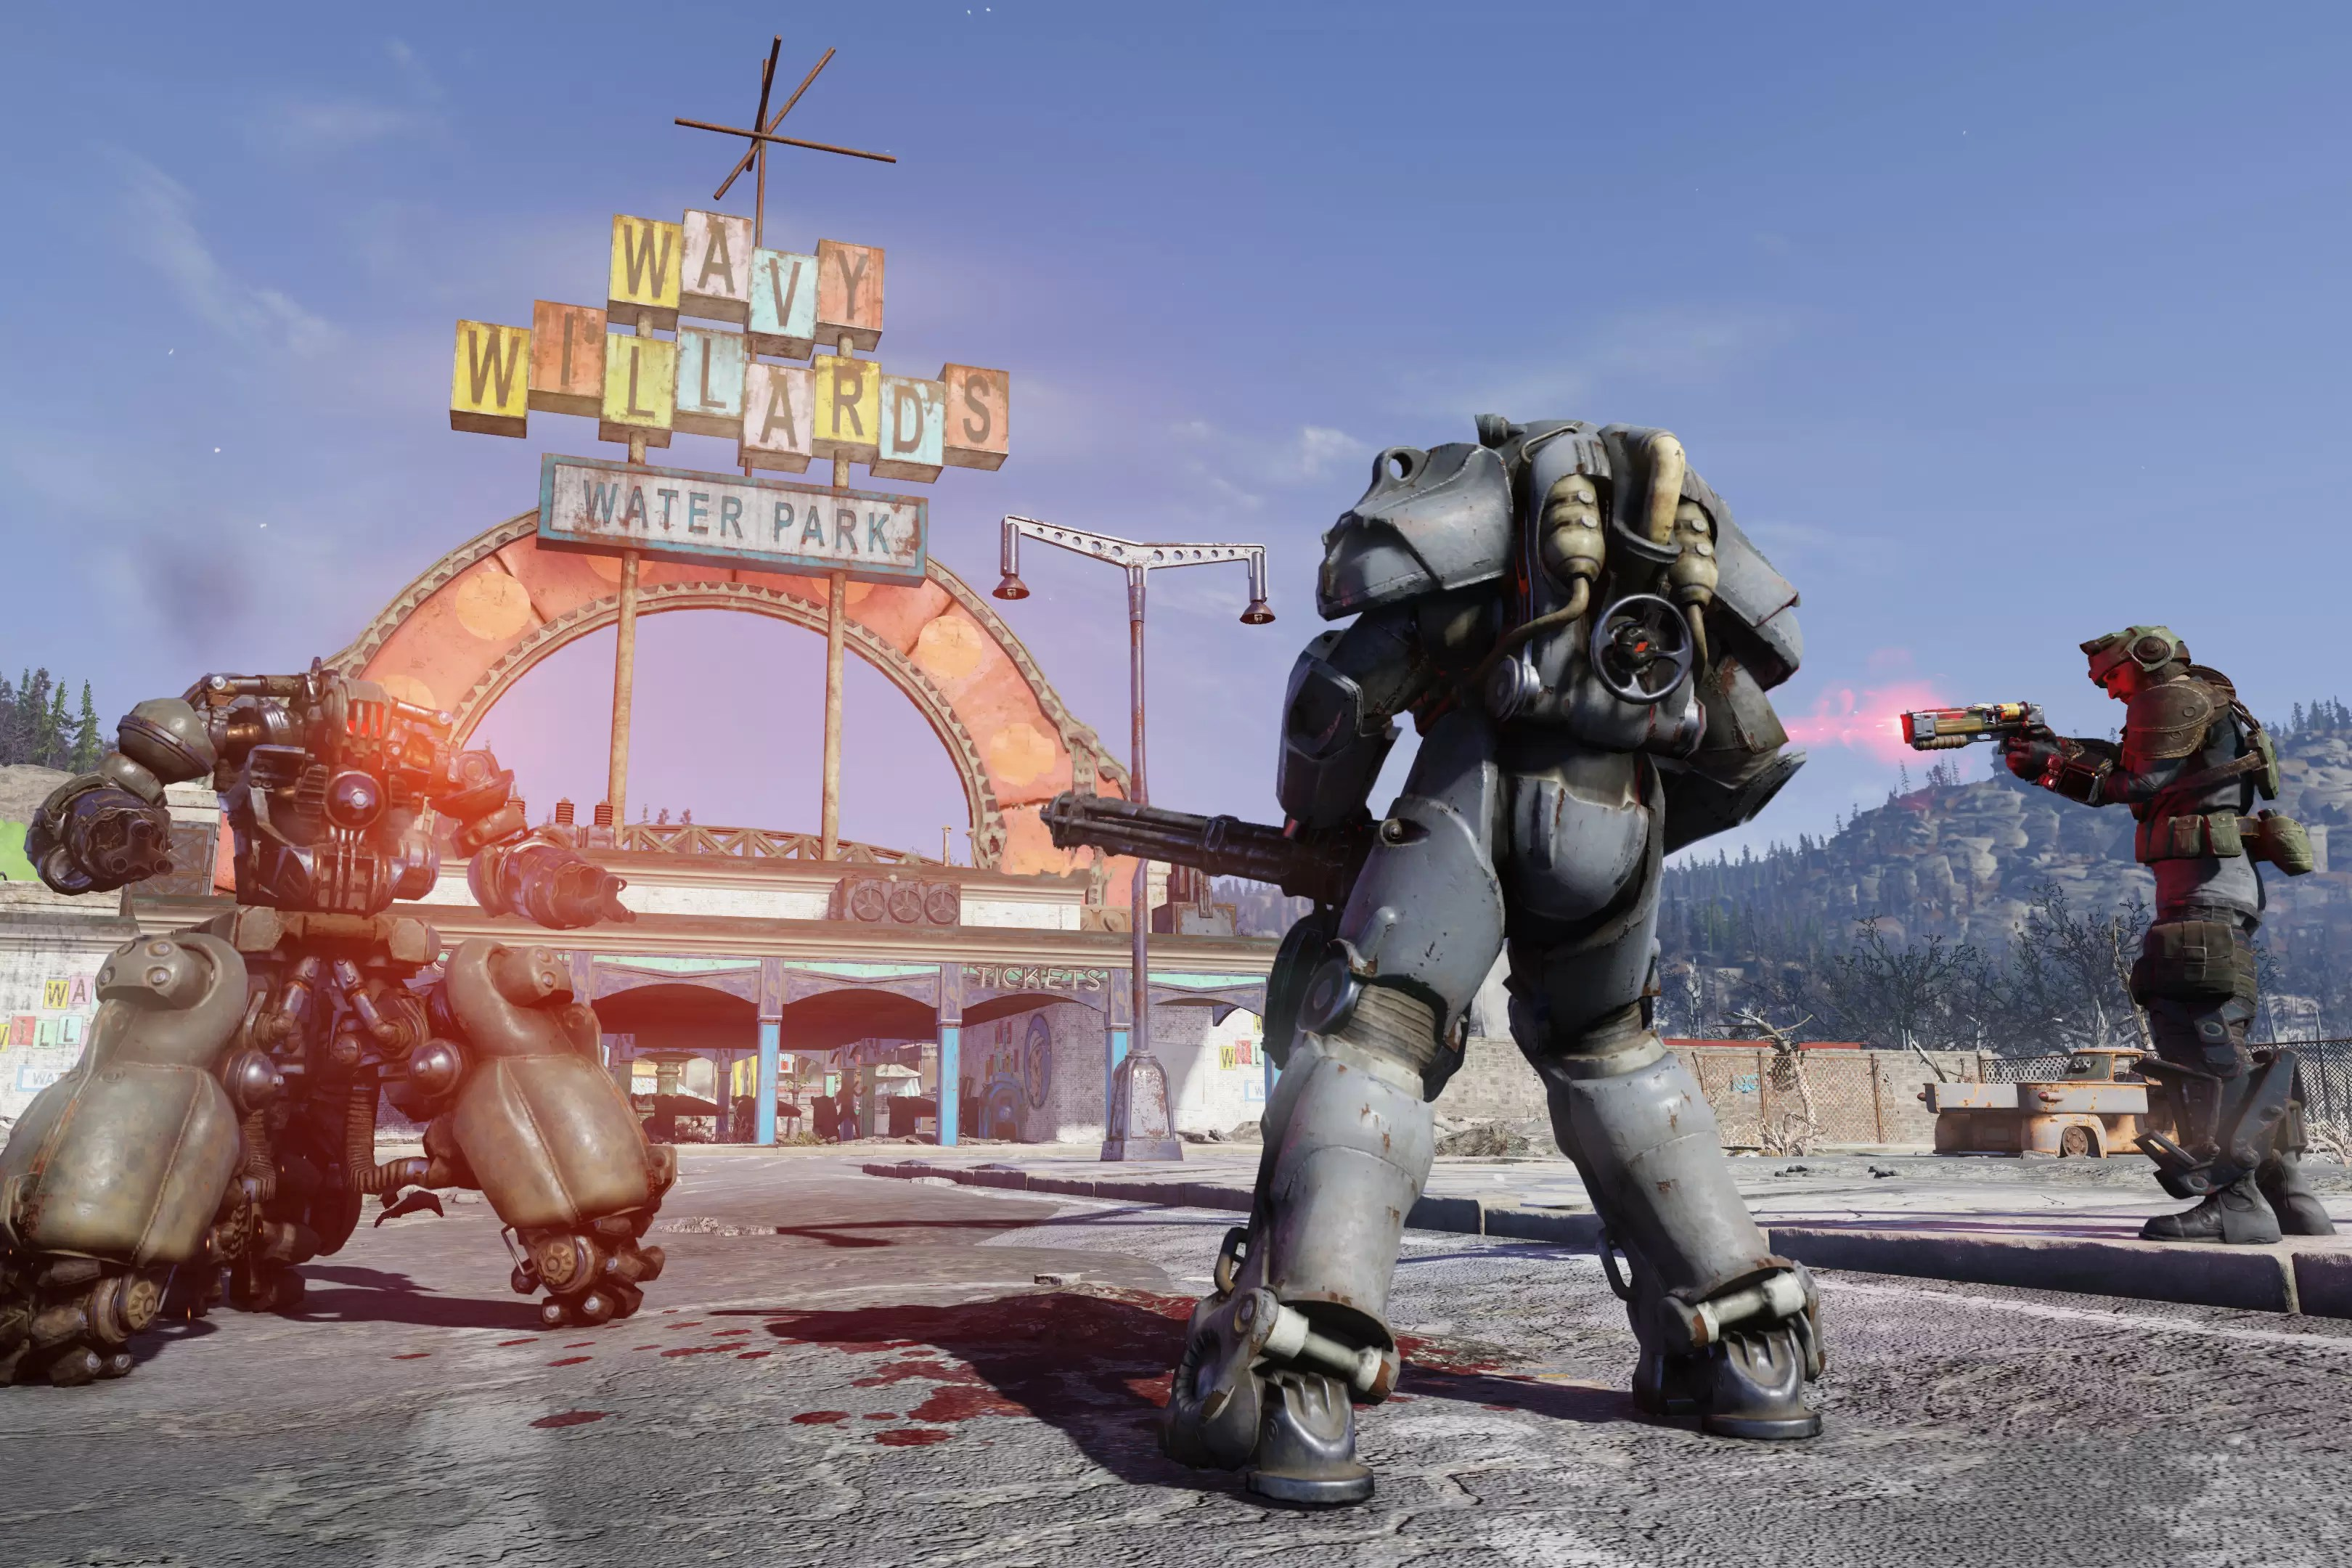 Fallout 76 Fallout 76 Review The Online Gamble Has Wrecked The Apocalypse